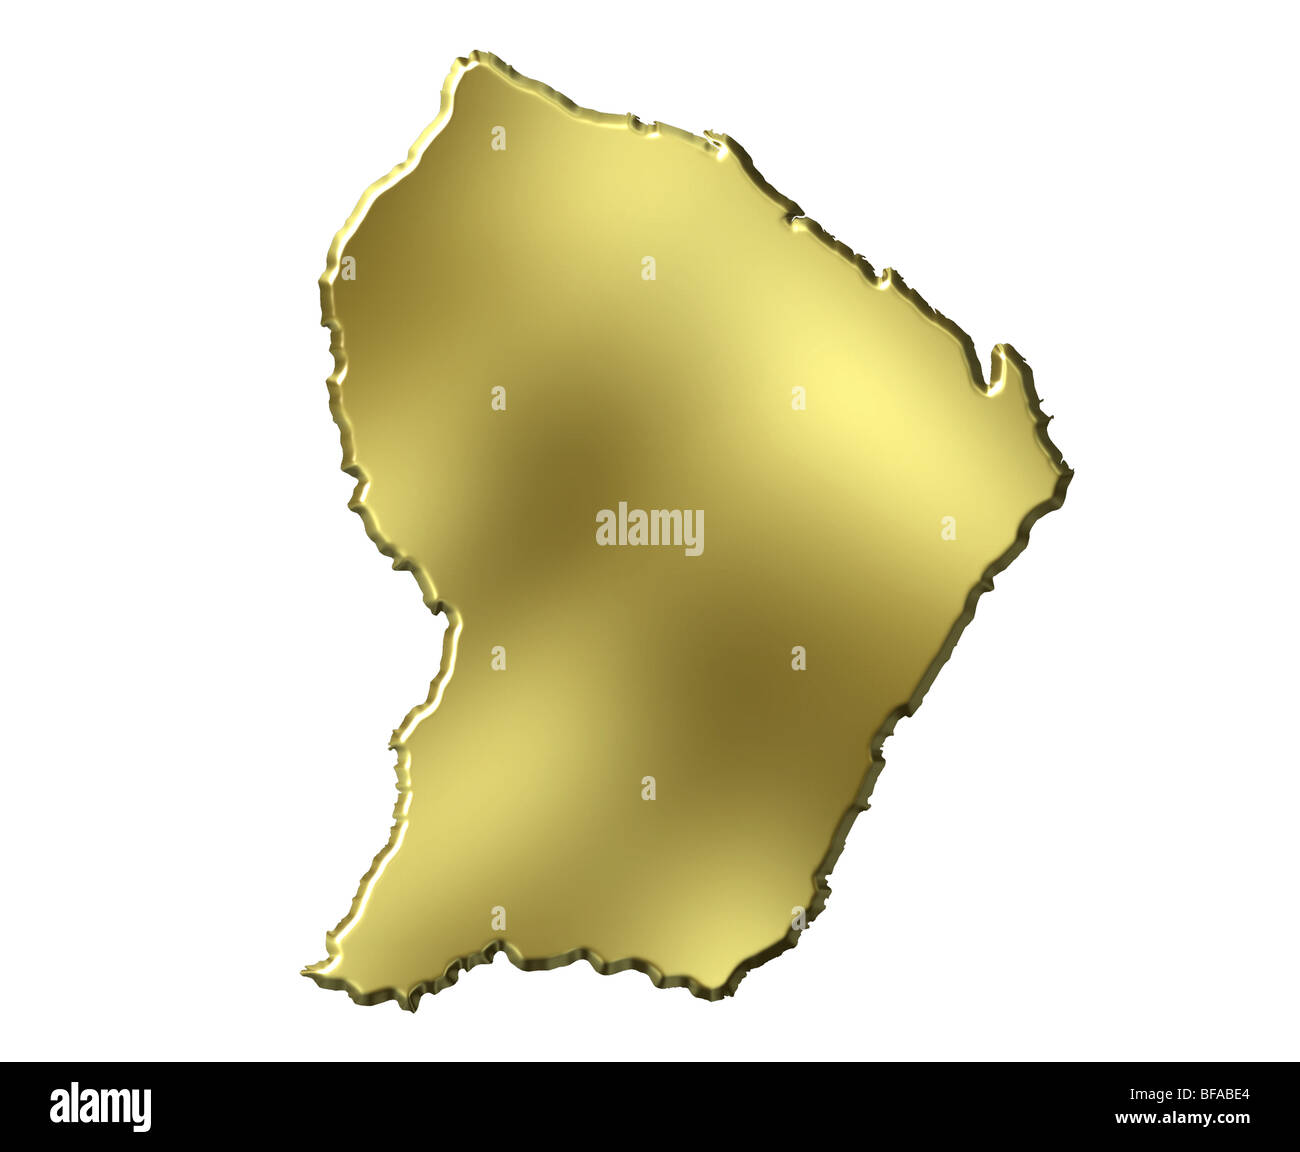 French Guiana 3d golden map - Stock Image